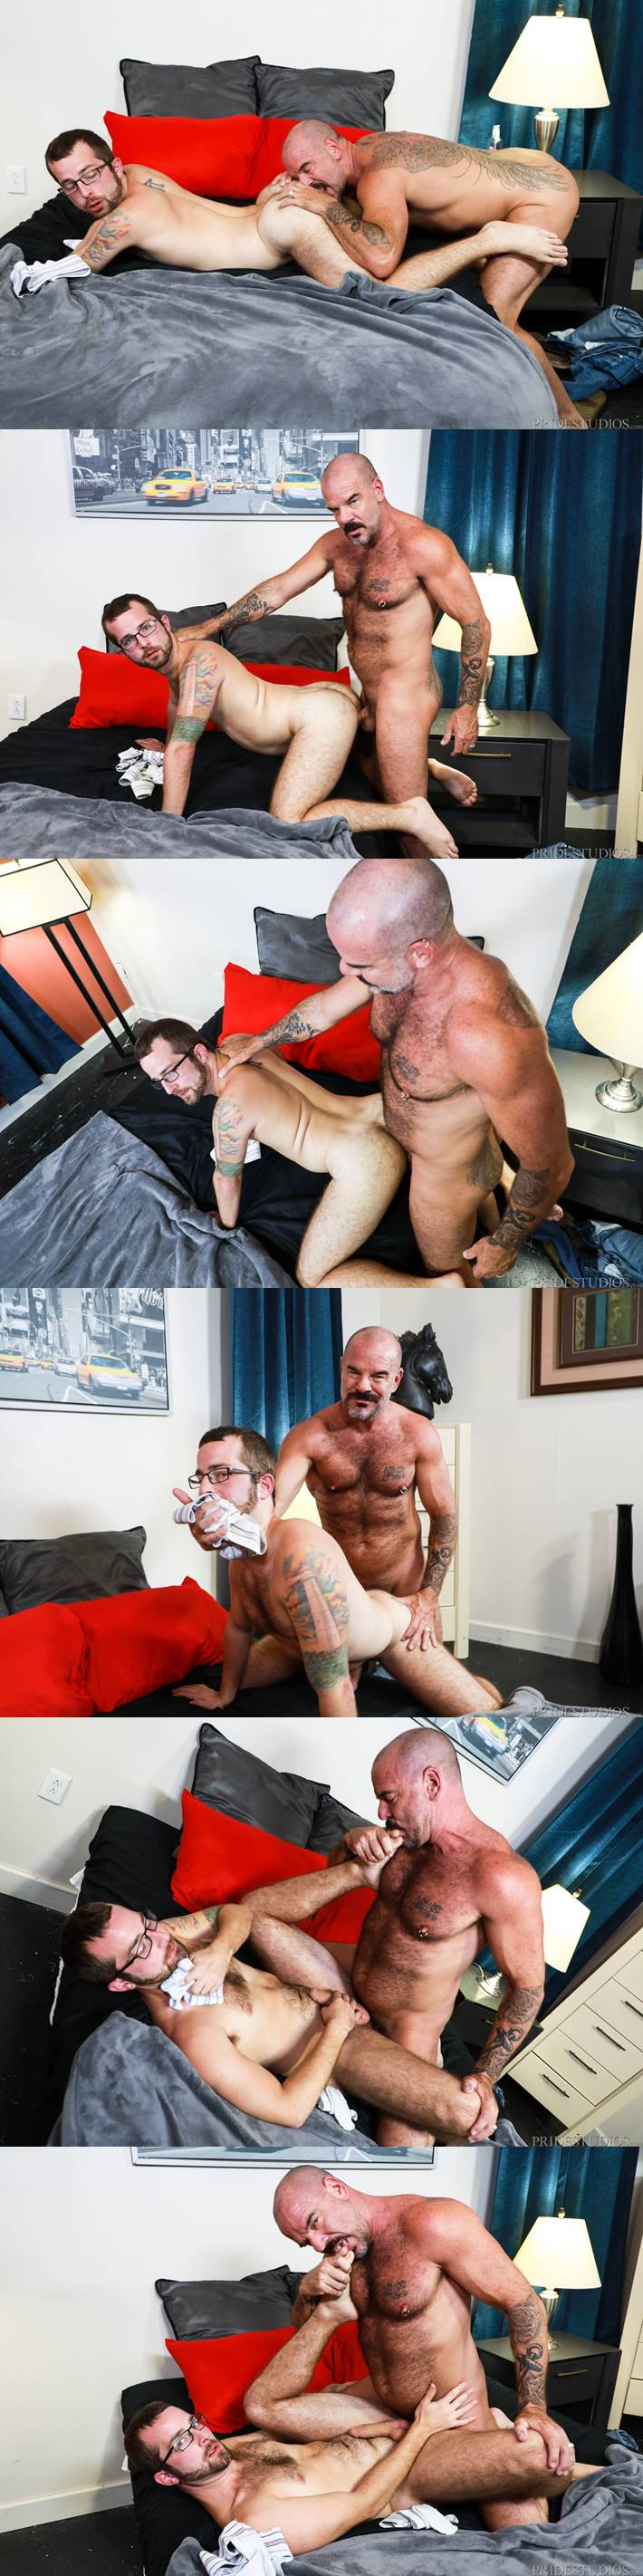 Jay Donahue & Jack Dyer for Pride Studios 1